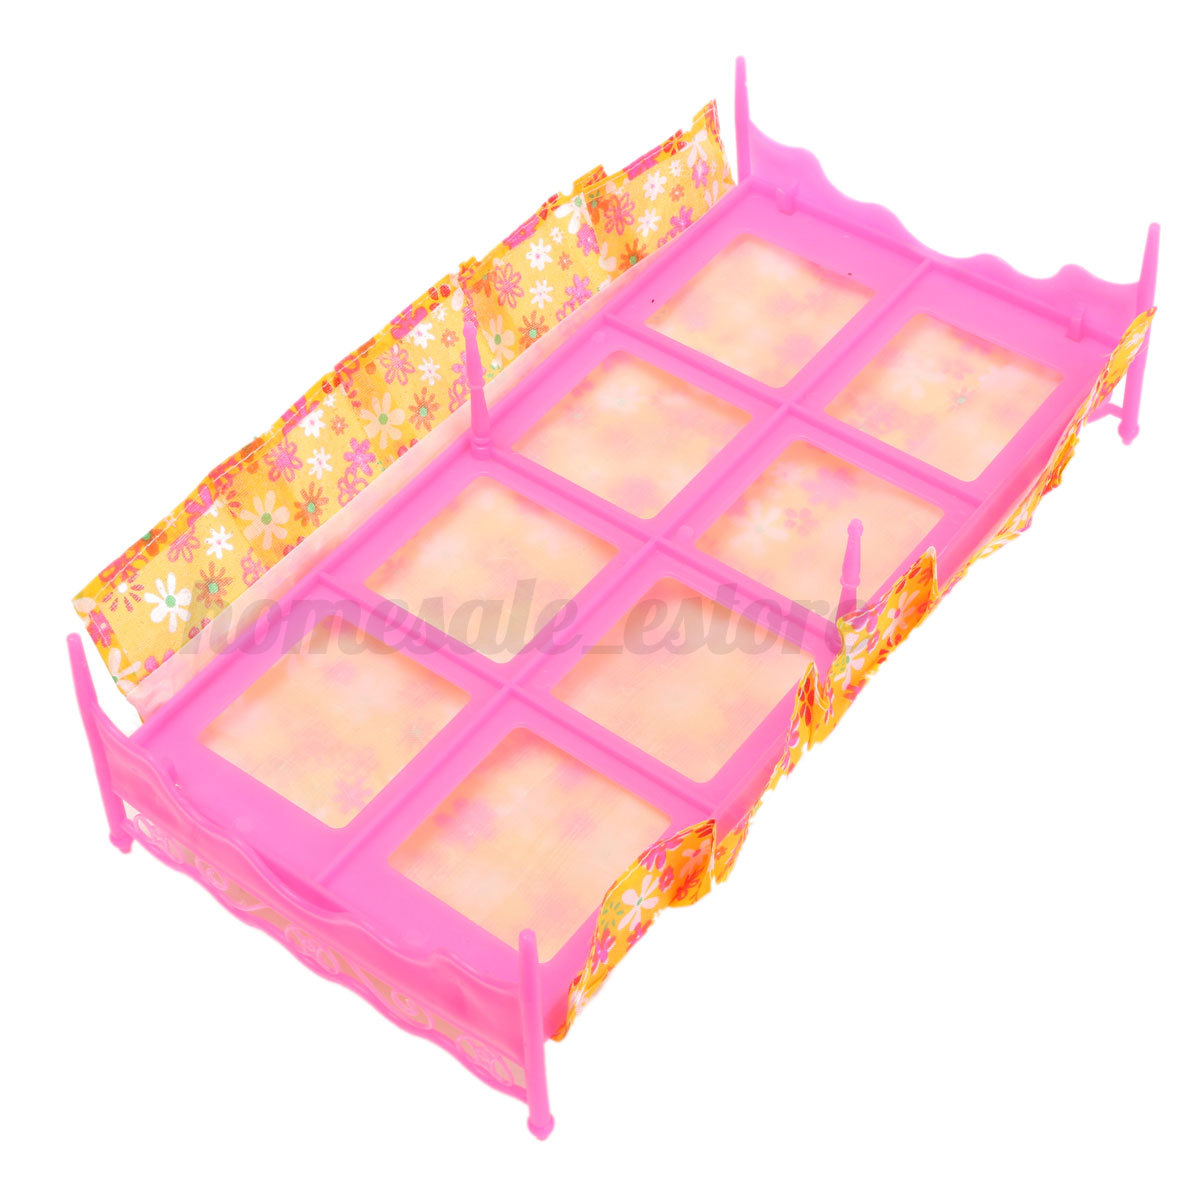 Plastic miniatures bedroom furniture single bed for barbie dolls dollhouse gift ebay Plastic bedroom furniture